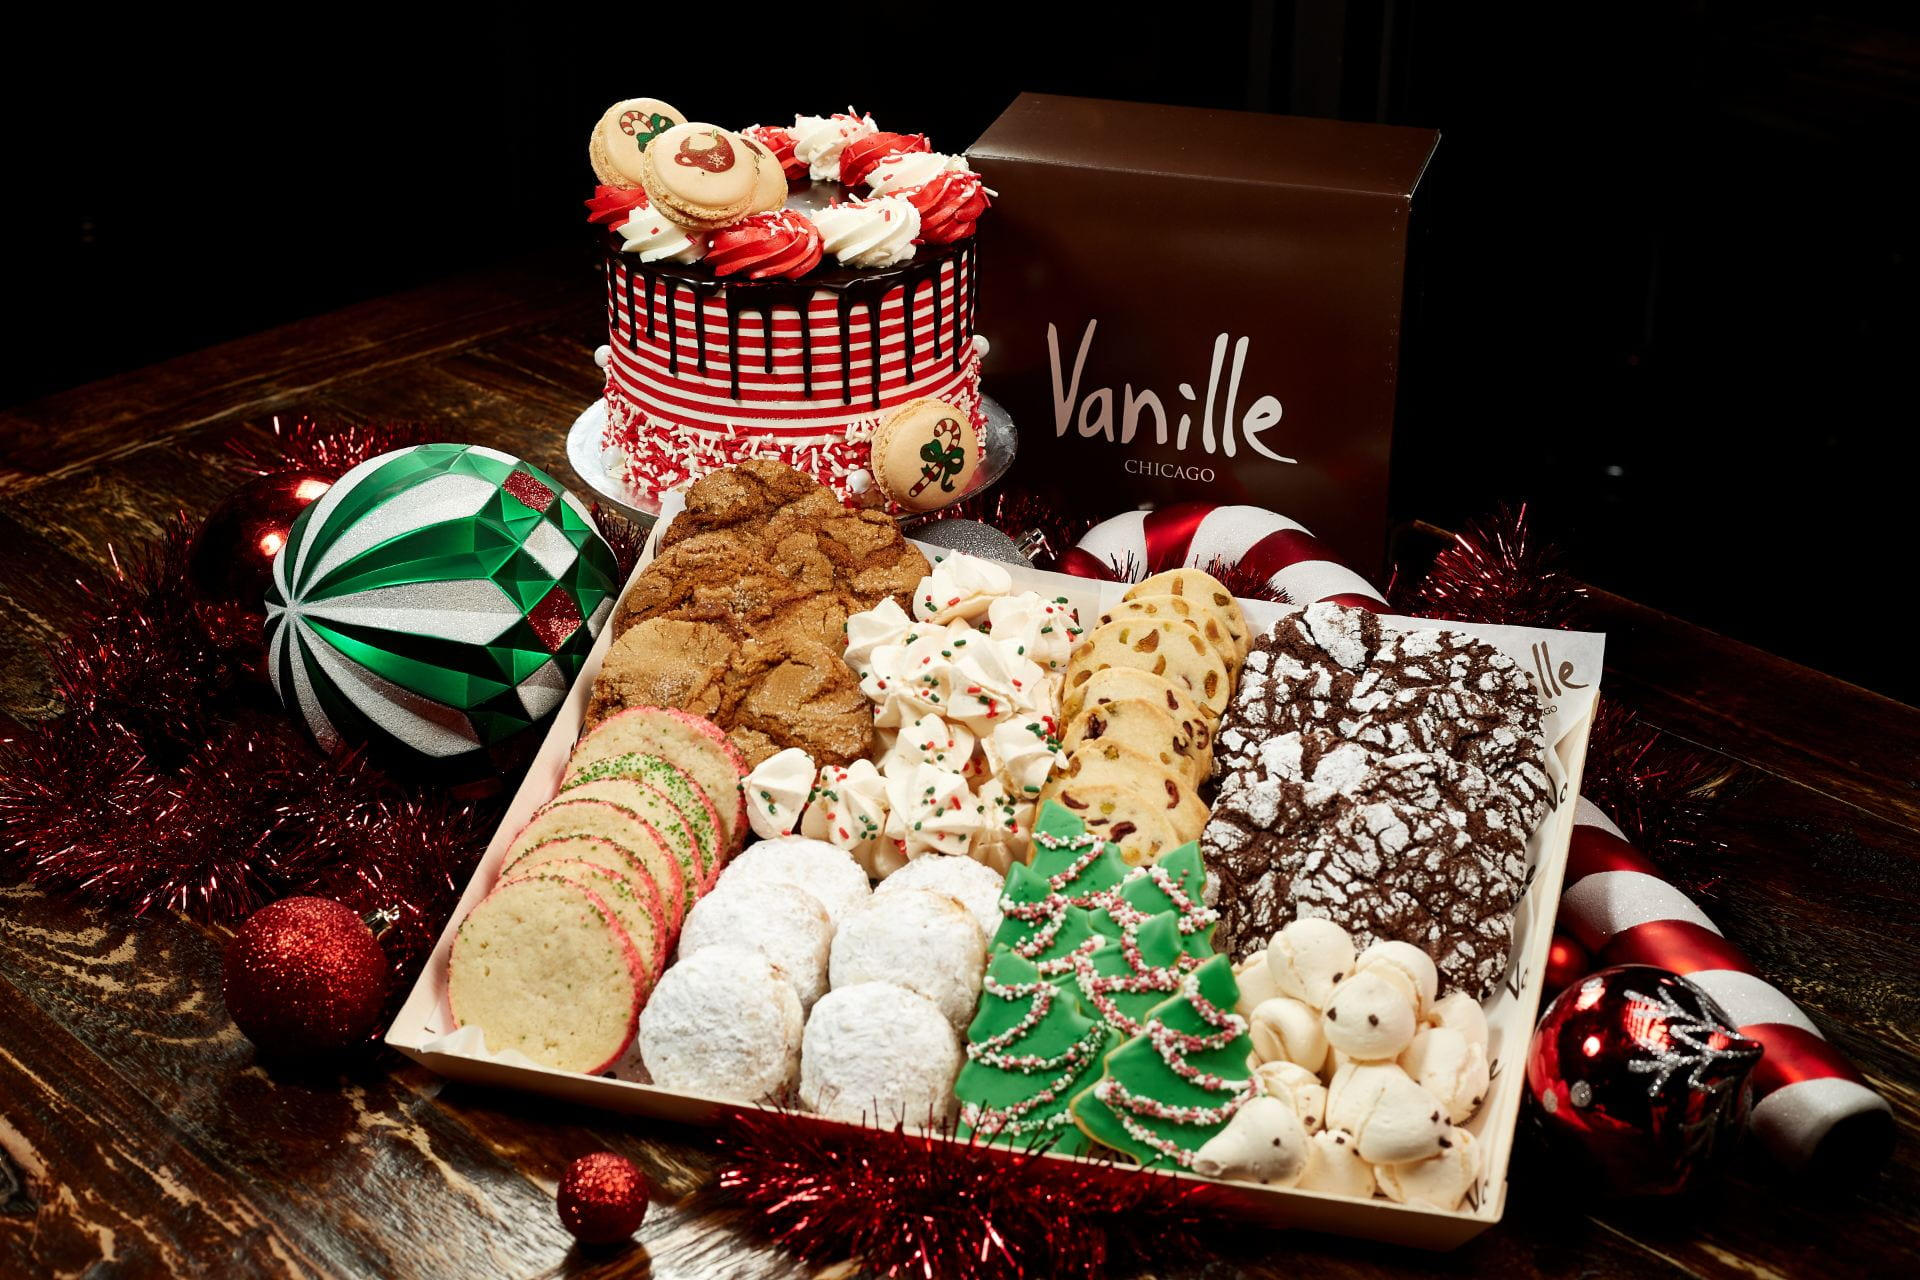 Harper Court's Vanille Patisserie Offers Tempting Variety of Holiday Sweets – 53rd Street